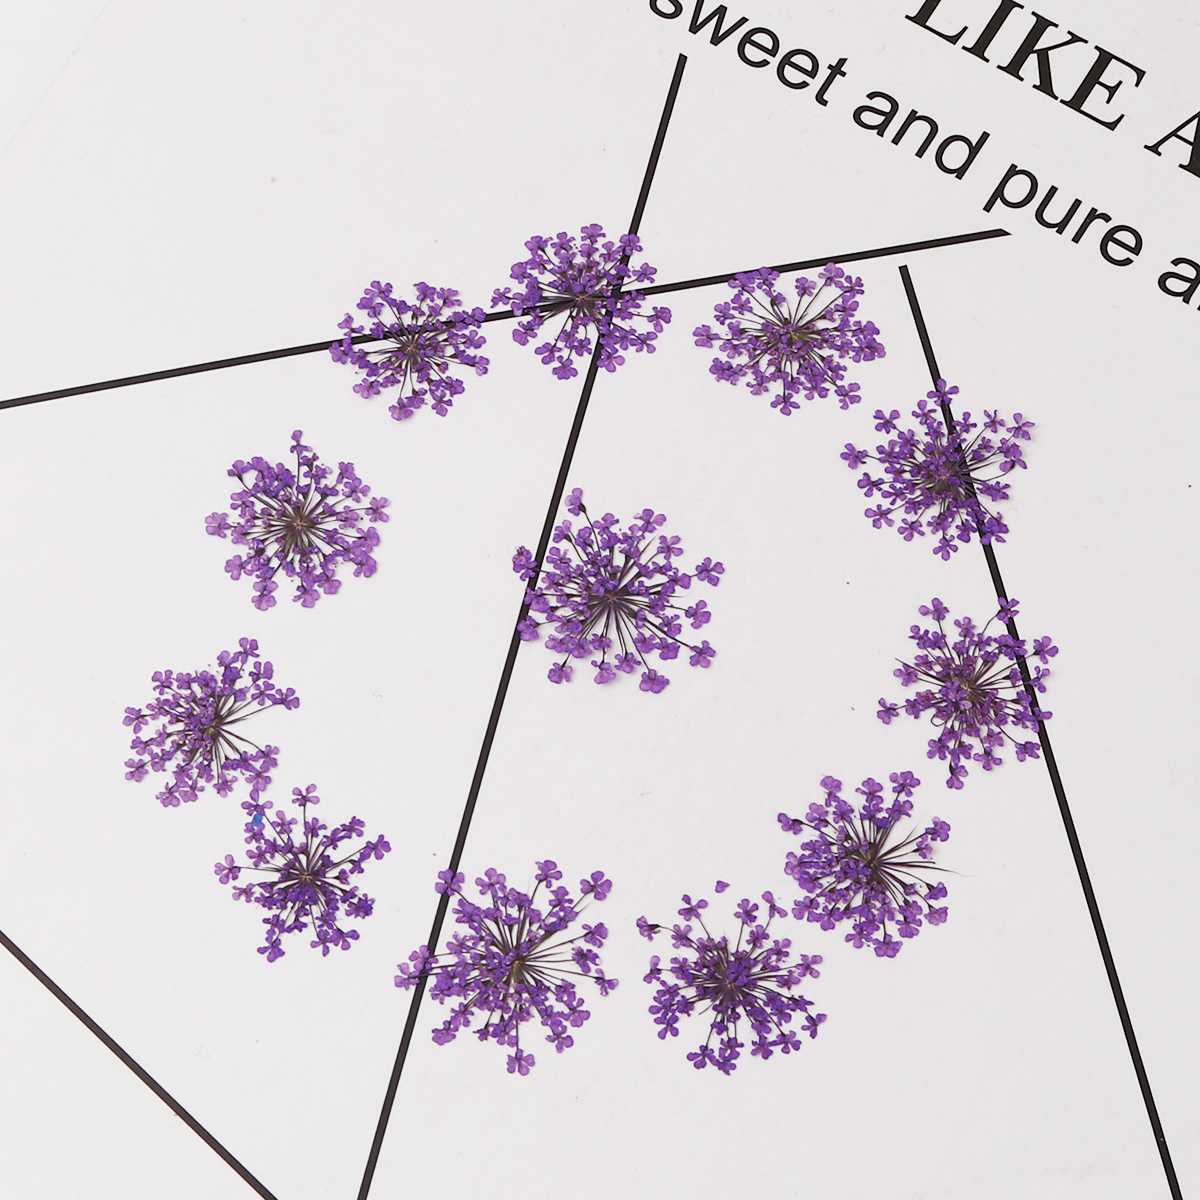 Light Purple Snowdrops DIY Crystal Epoxy Special Dried Flowers About 27x27mm-17x17mm-1 Package (12 Per Pack)